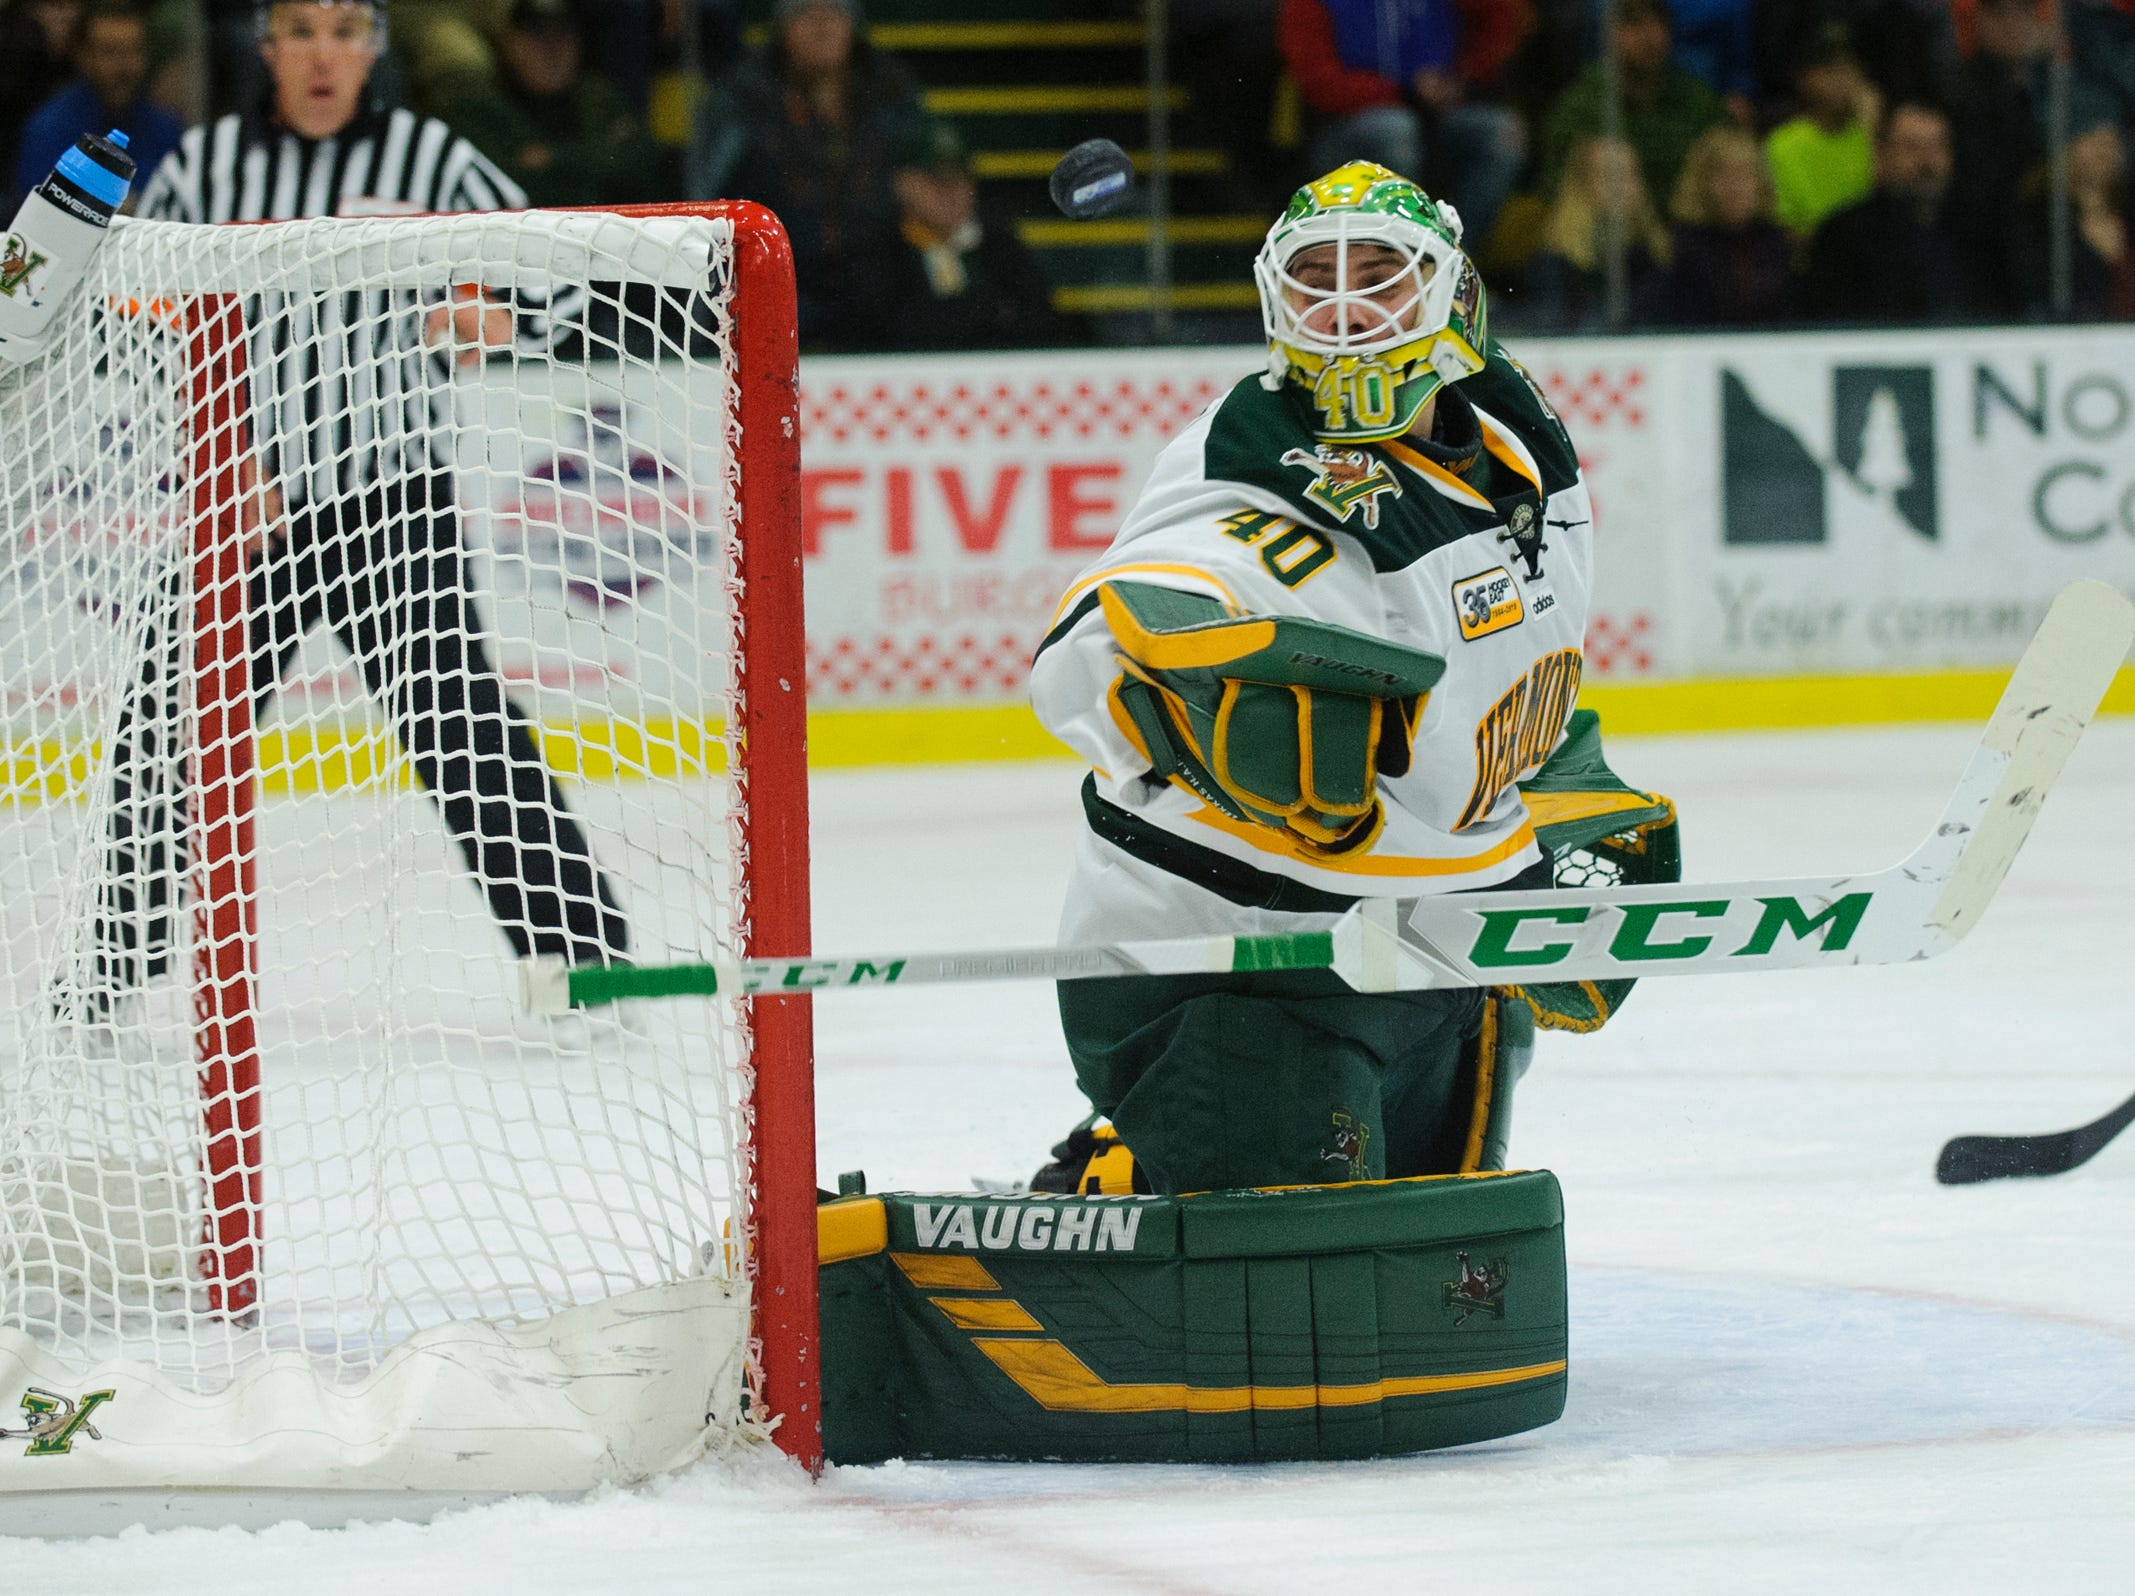 Vermont goalie Stefanos Lekkas (40) loses his stick as he makes a save during the men's hockey game between the Mine Black Bears and the Vermont Catamounts at Gutterson Field House on Friday night November 30, 2018 in Burlington.